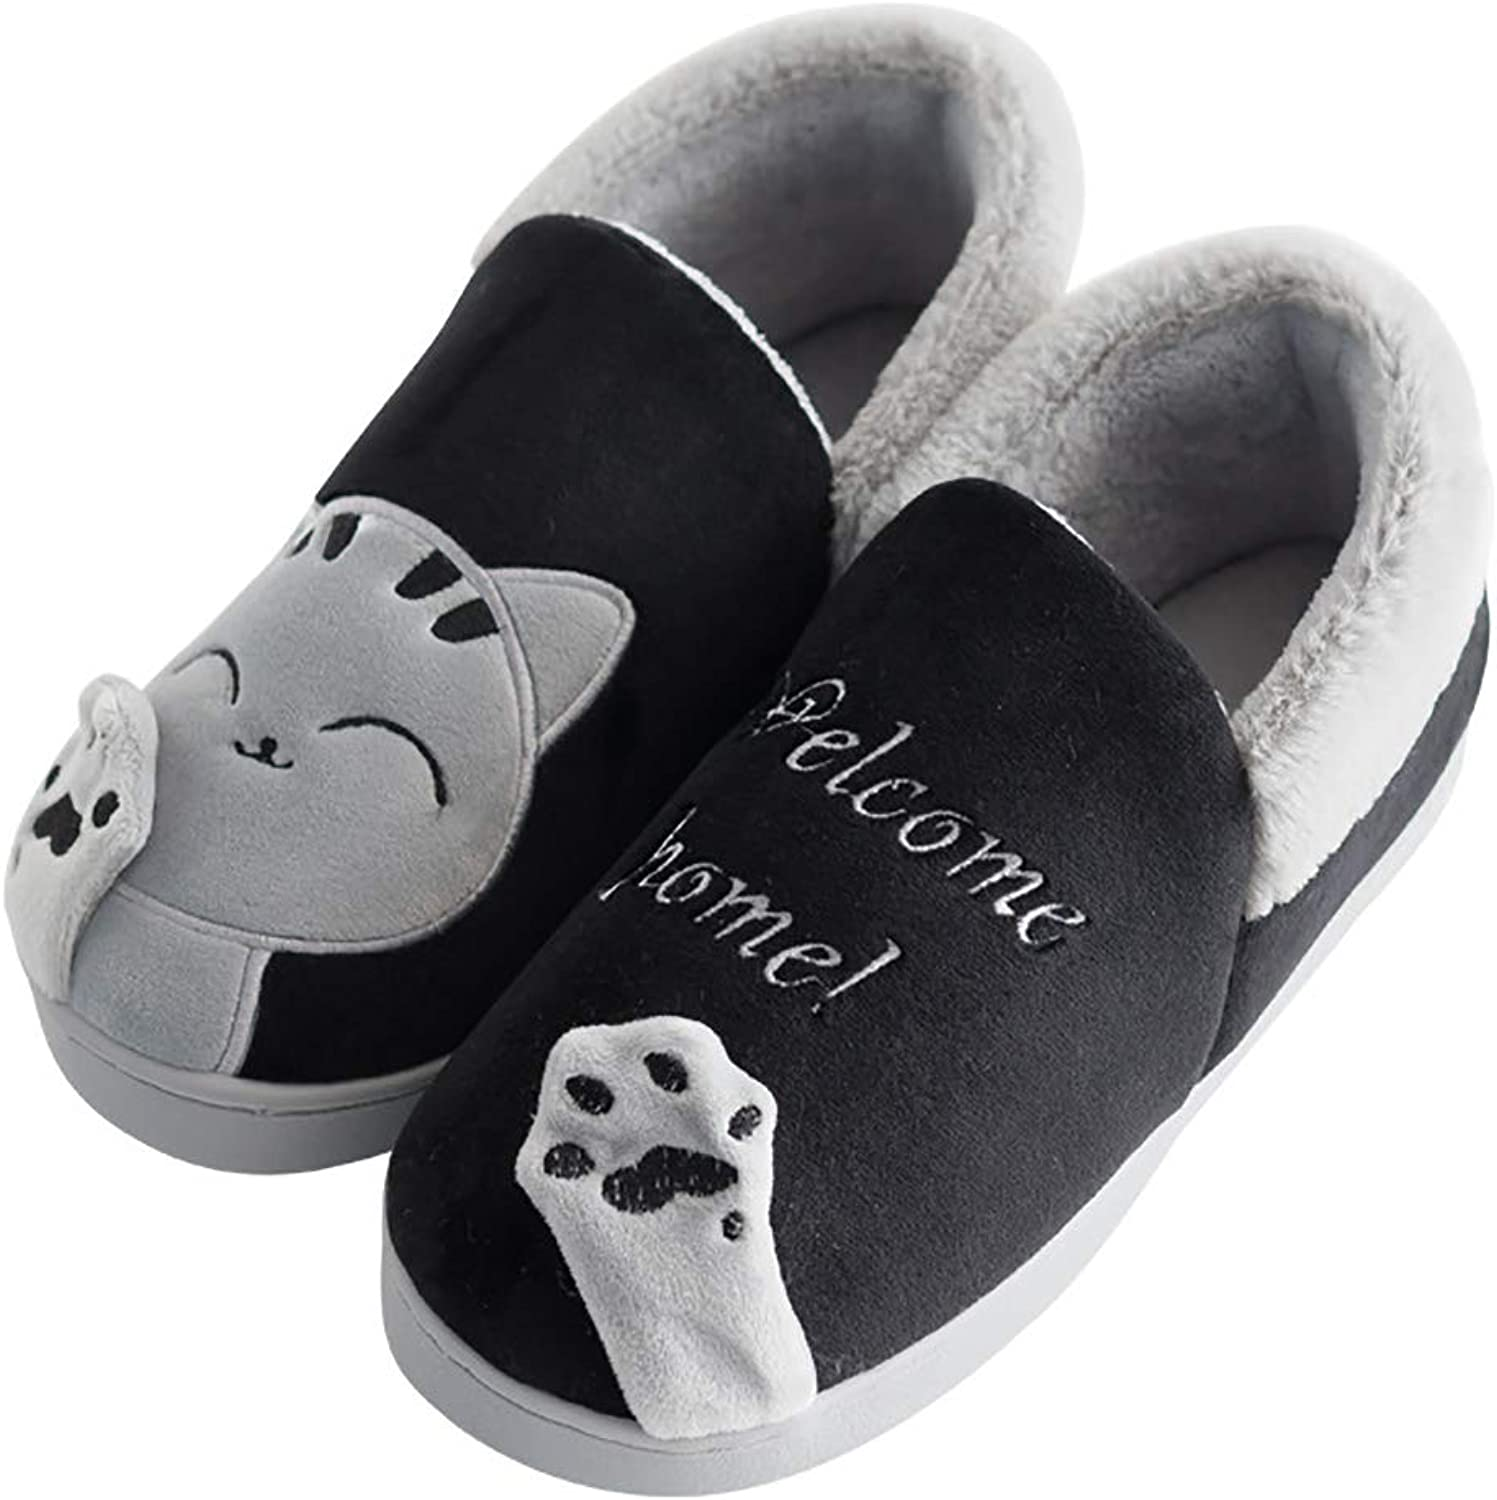 Plush Slippers with All-Inclusive Heel Indoor Warm Non-Slip TPR Cotton shoes Cartoon Cat Washable Home shoes for Men and Women,Black,40 41